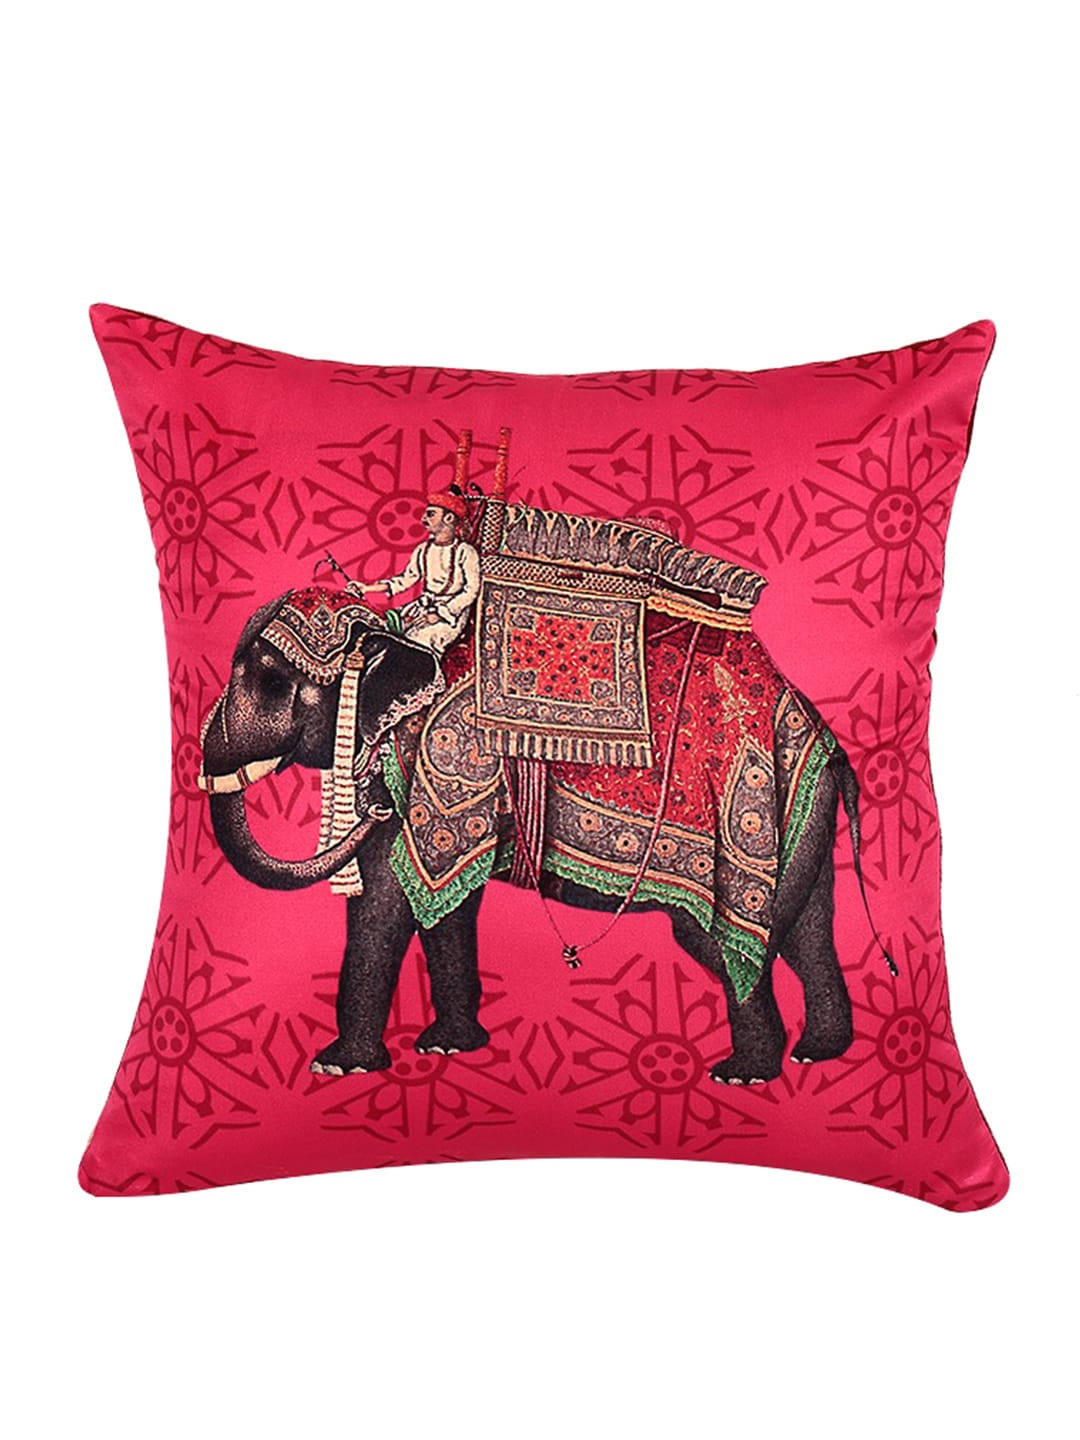 Sofa Cushion Cover India: Cushion Covers   Buy Cushion Cover Online in India   Myntra,